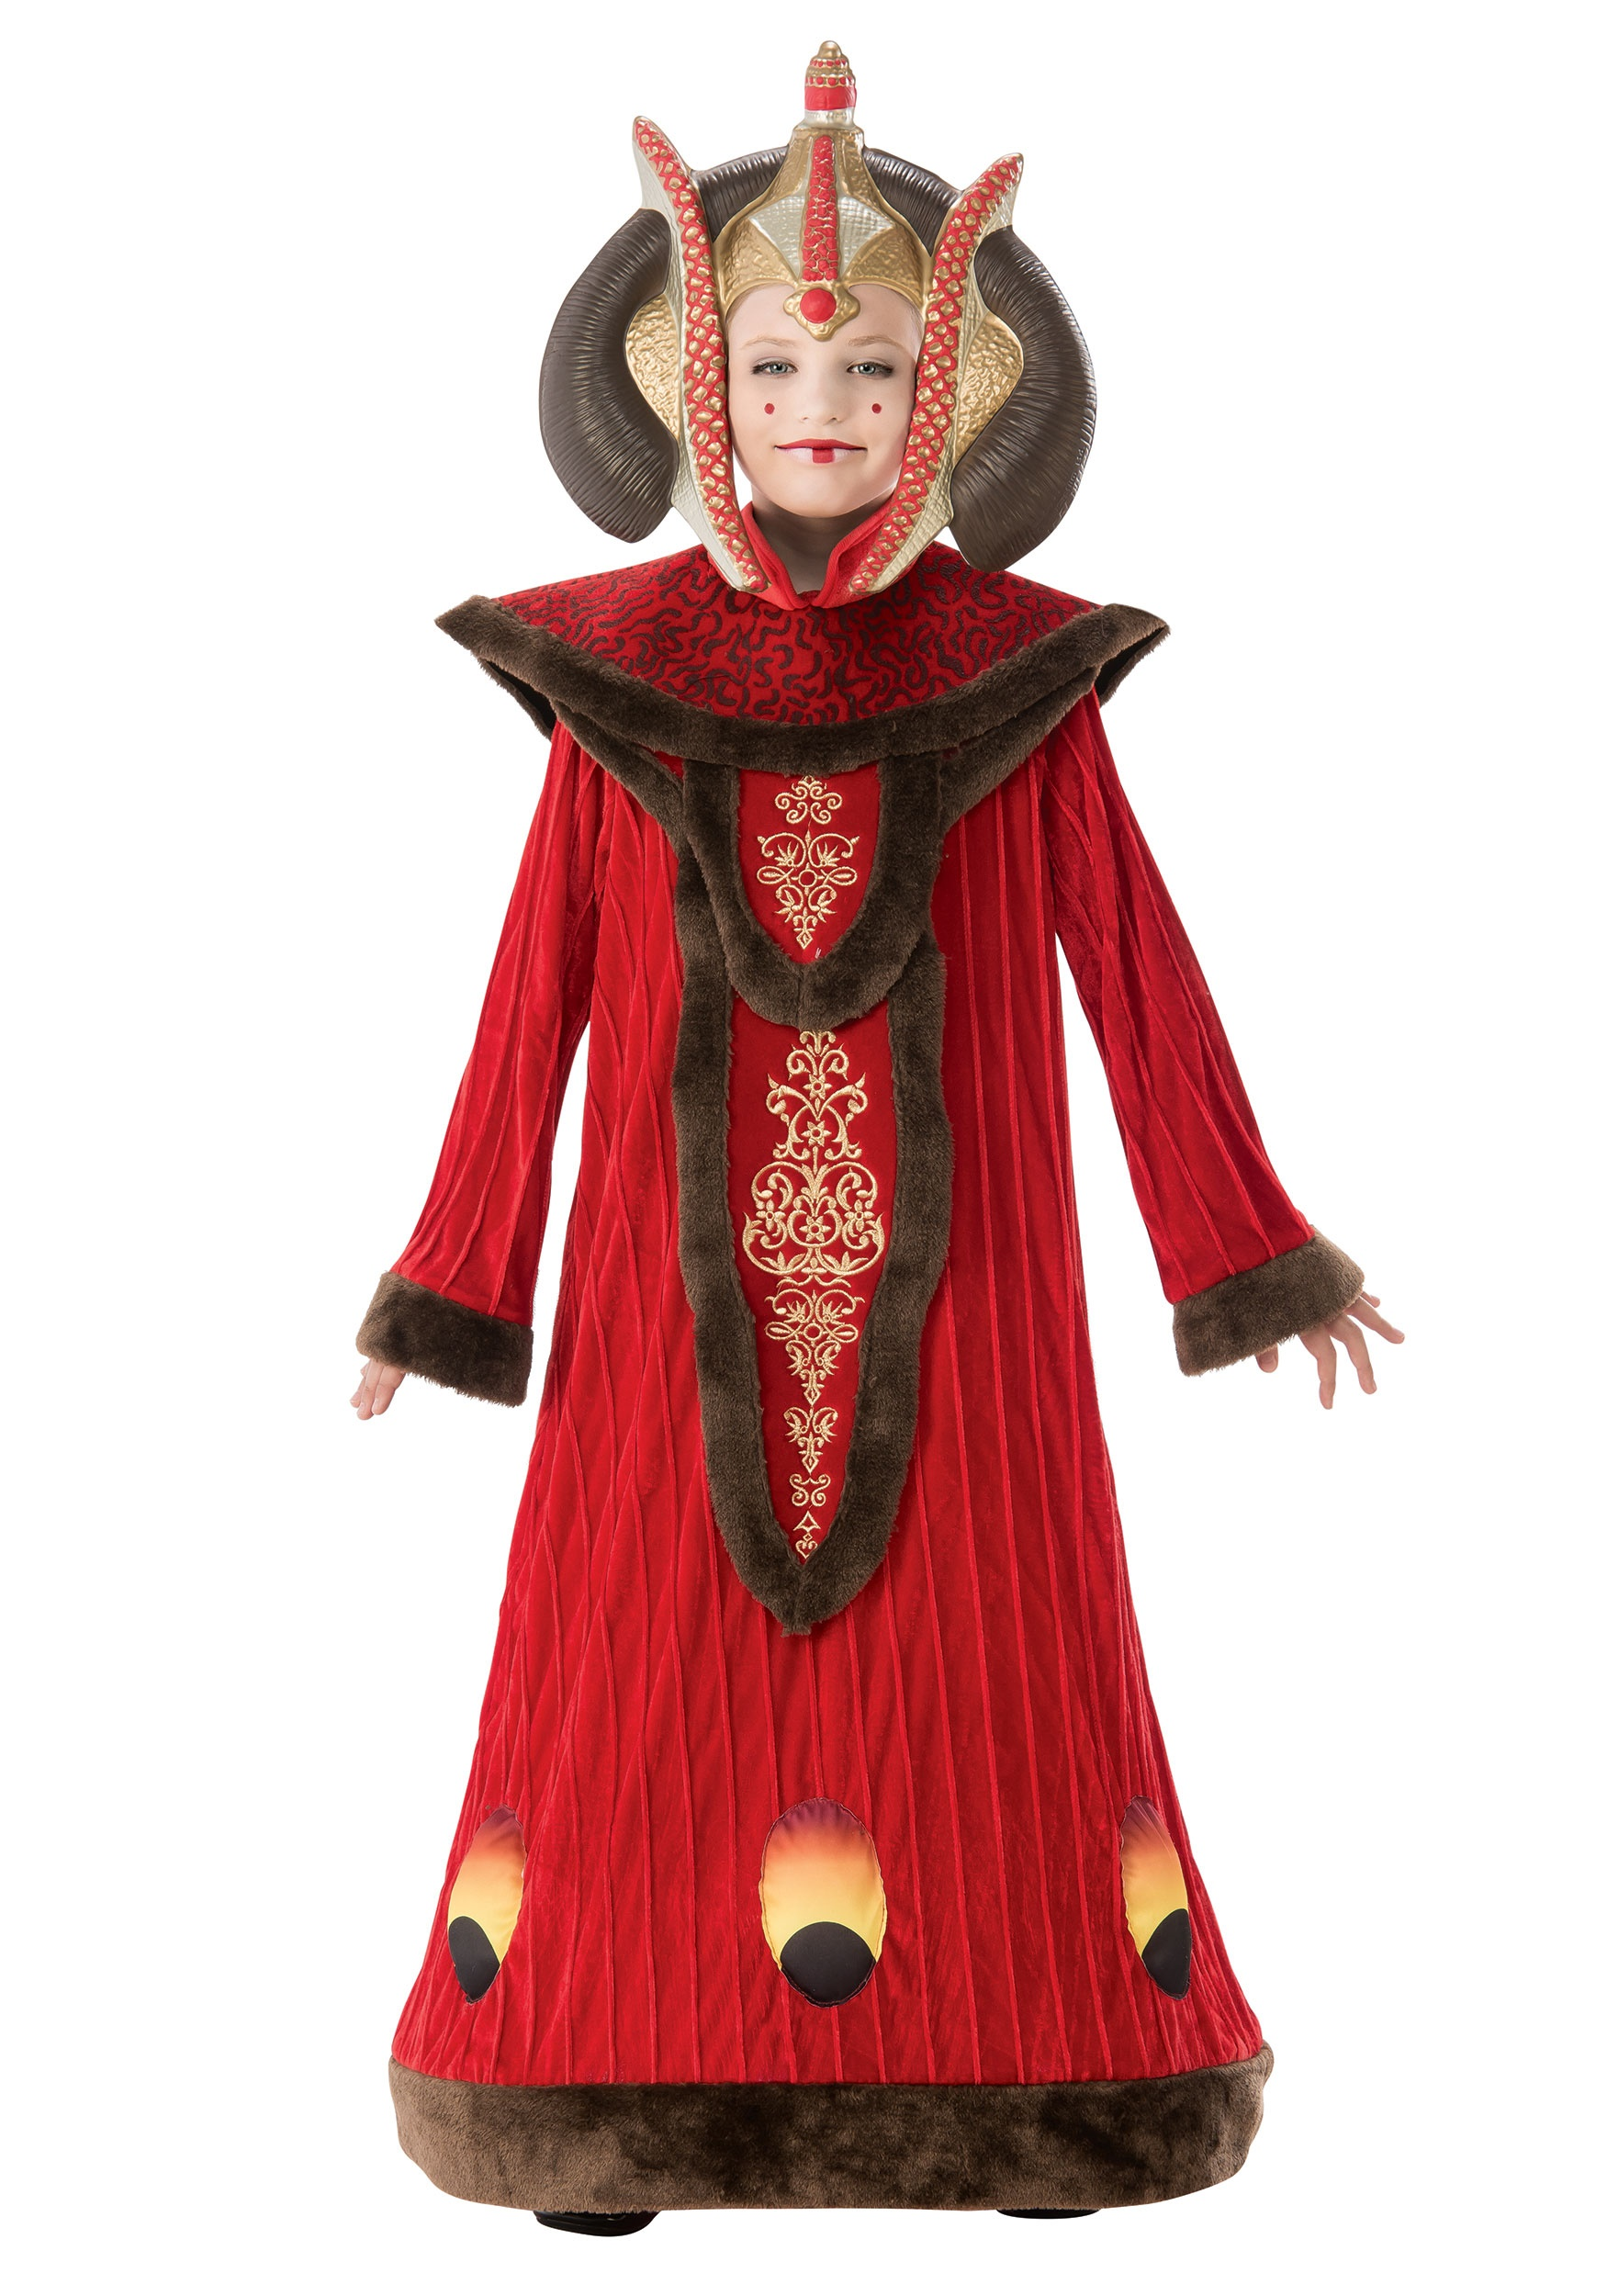 Star Wars Queen Amidala Costume for Girls